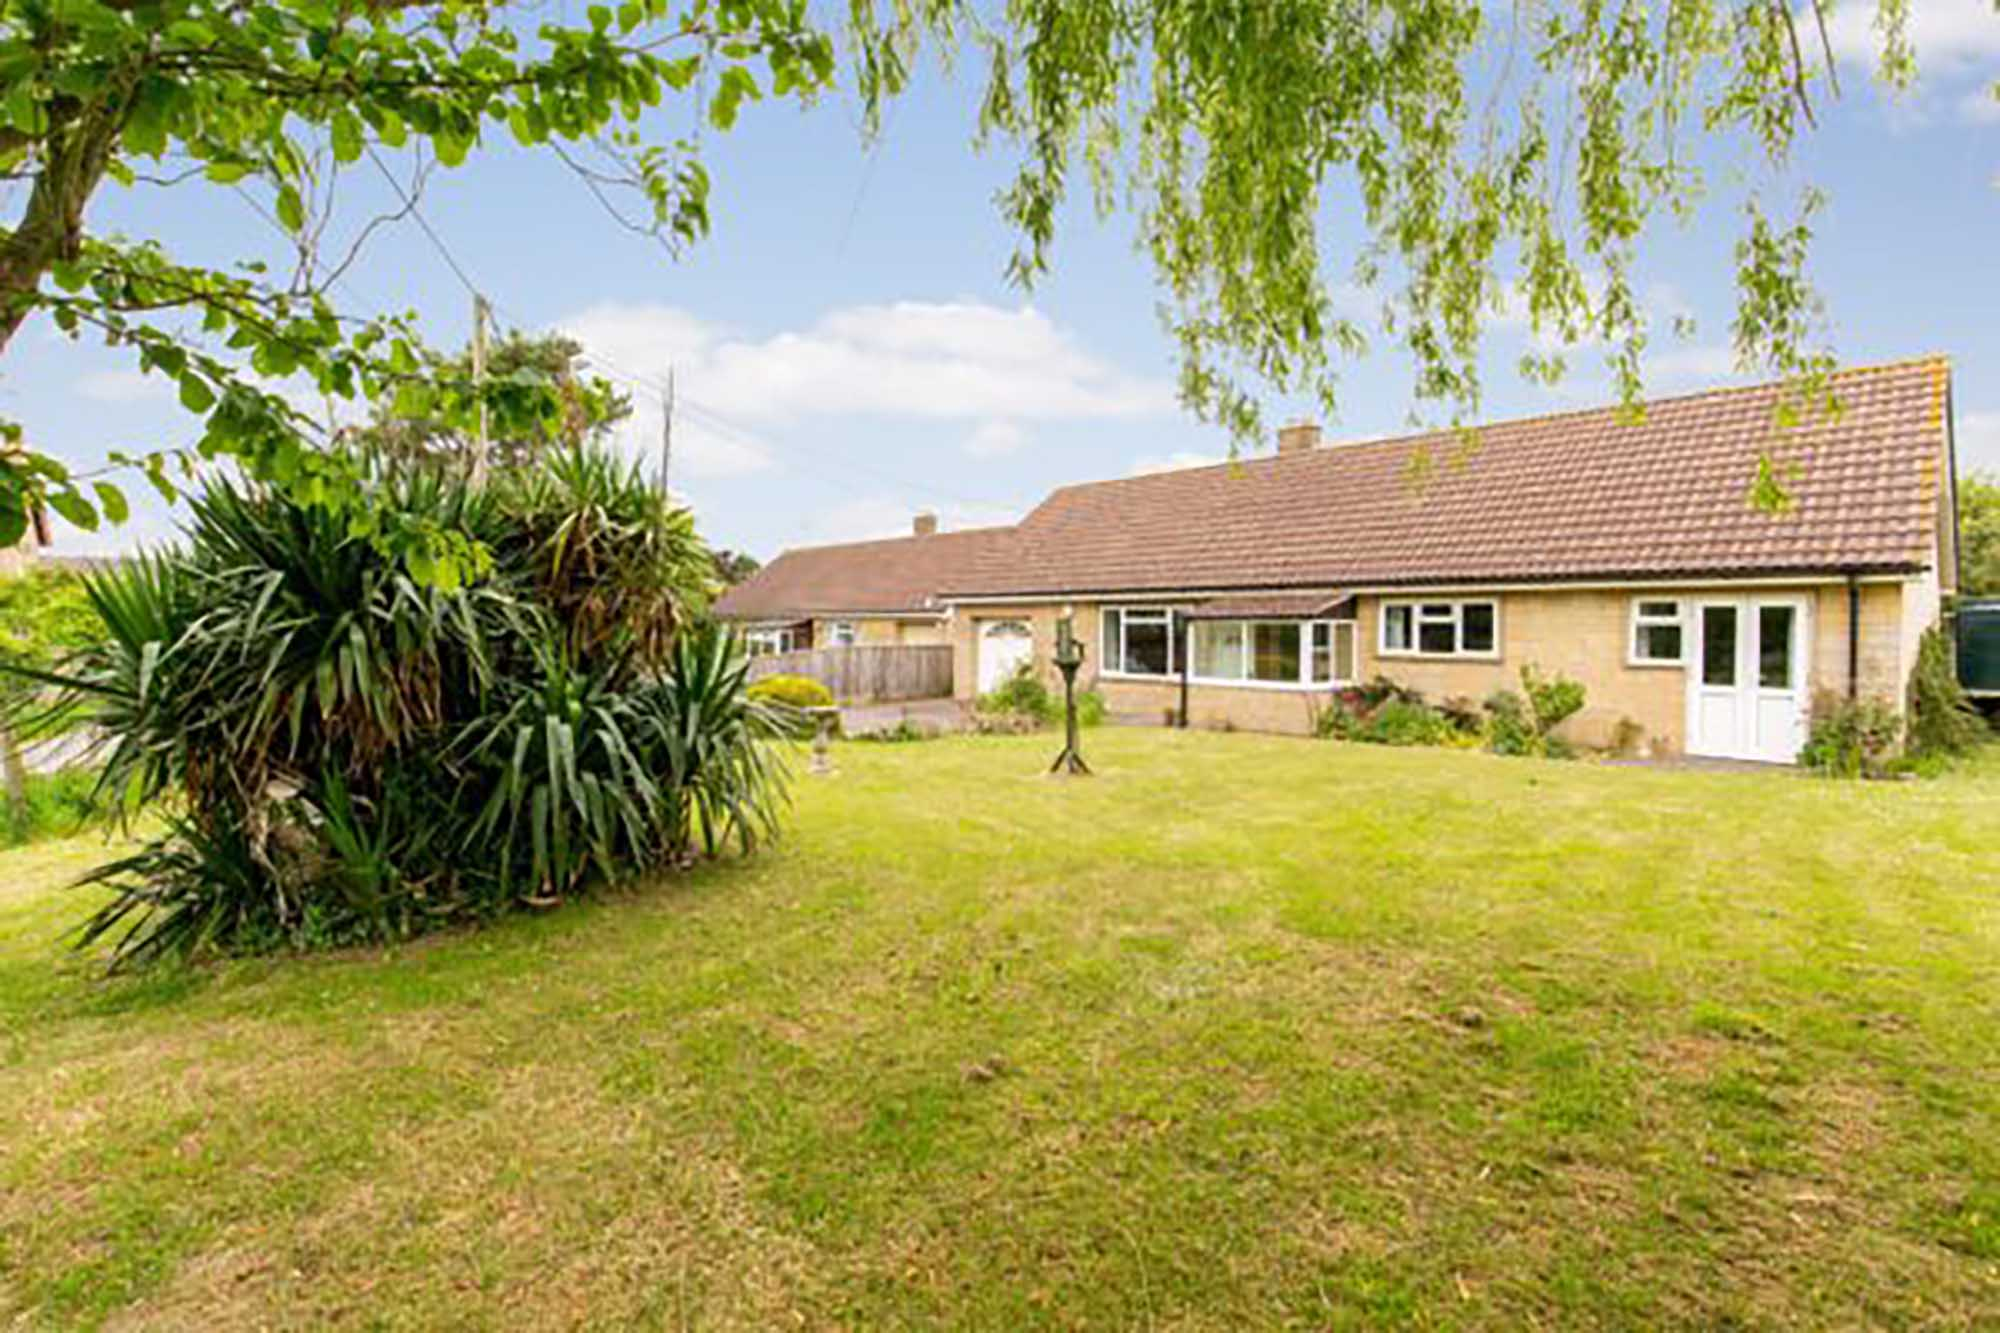 3 Bedroom hideaway in picturesque village close to Bruton